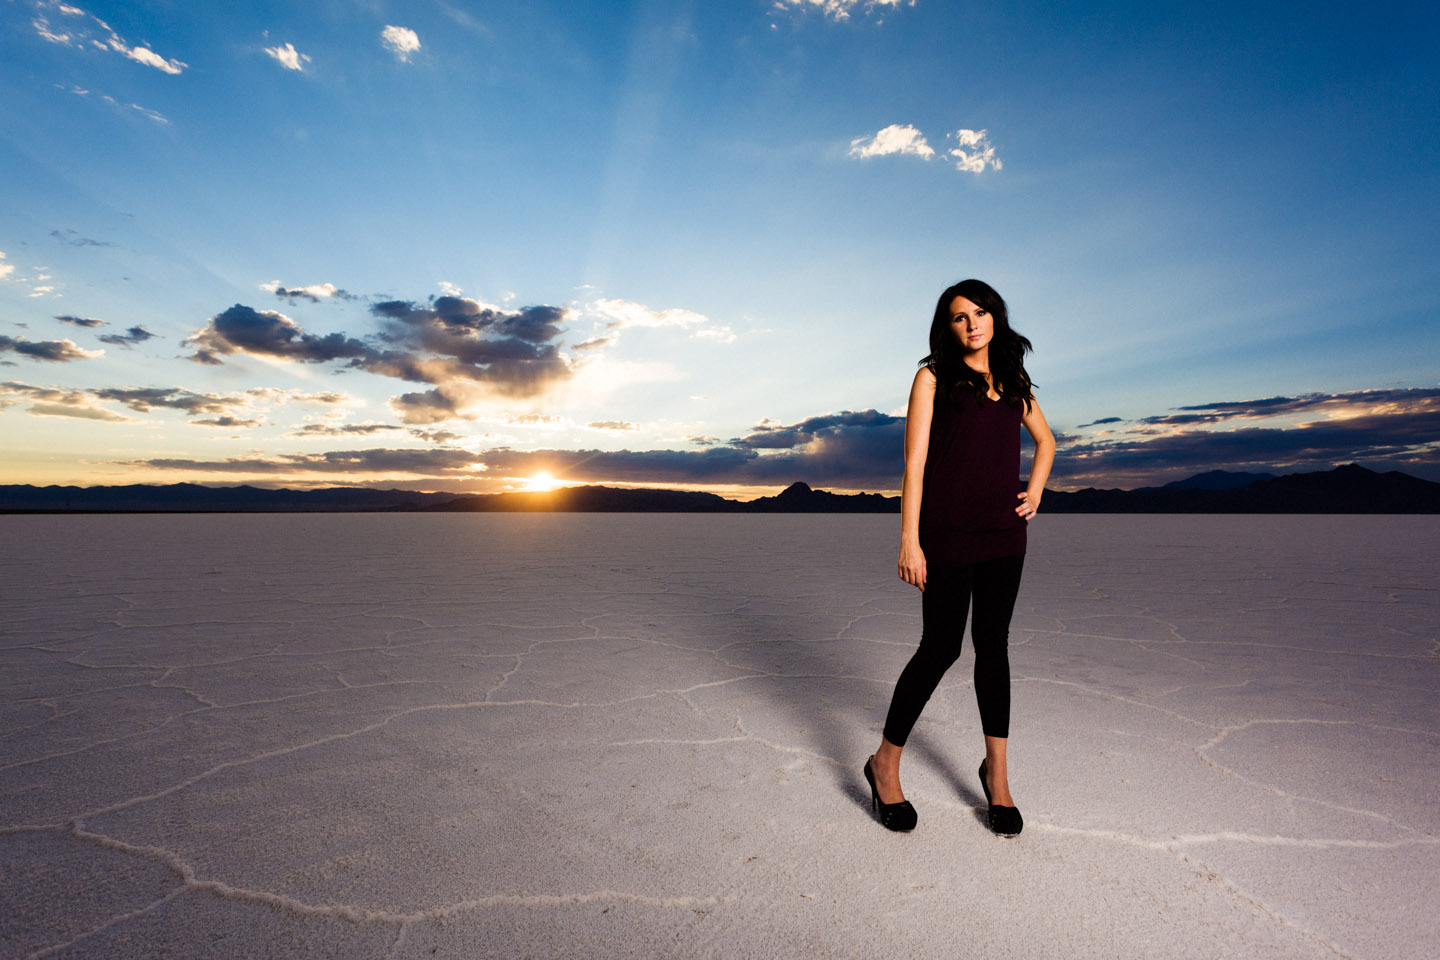 Shooting wide angle gives a great view of the Salt Flats